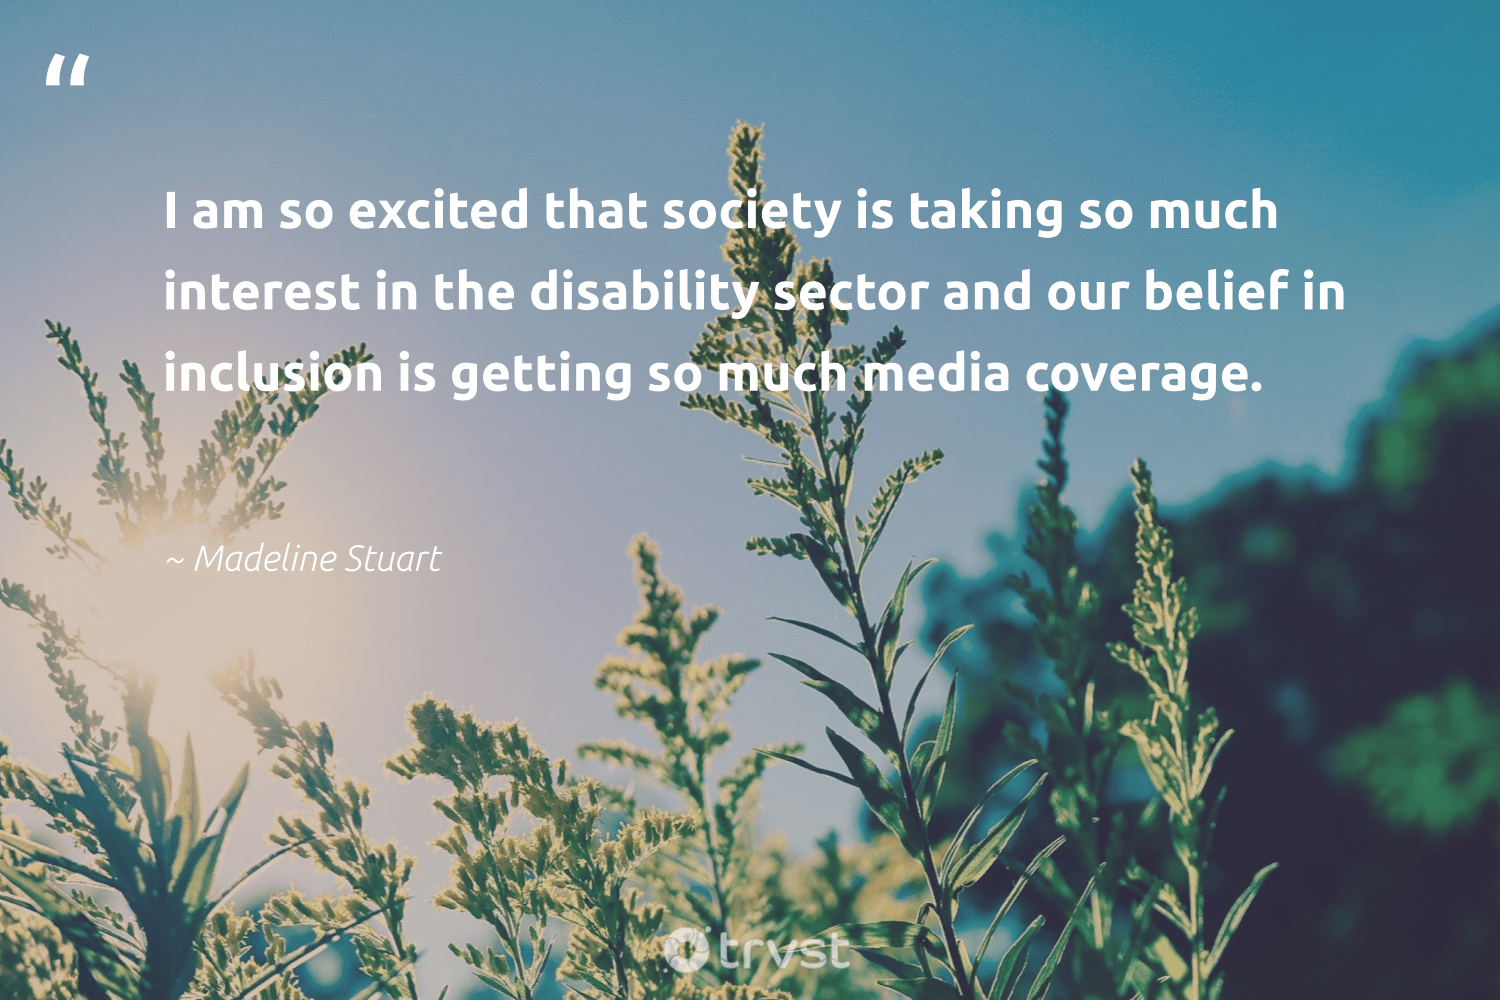 """""""I am so excited that society is taking so much interest in the disability sector and our belief in inclusion is getting so much media coverage.""""  - Madeline Stuart #trvst #quotes #inclusion #society #diversity #equalopportunity #socialgood #dogood #discrimination #makeadifference #giveback #planetearthfirst"""